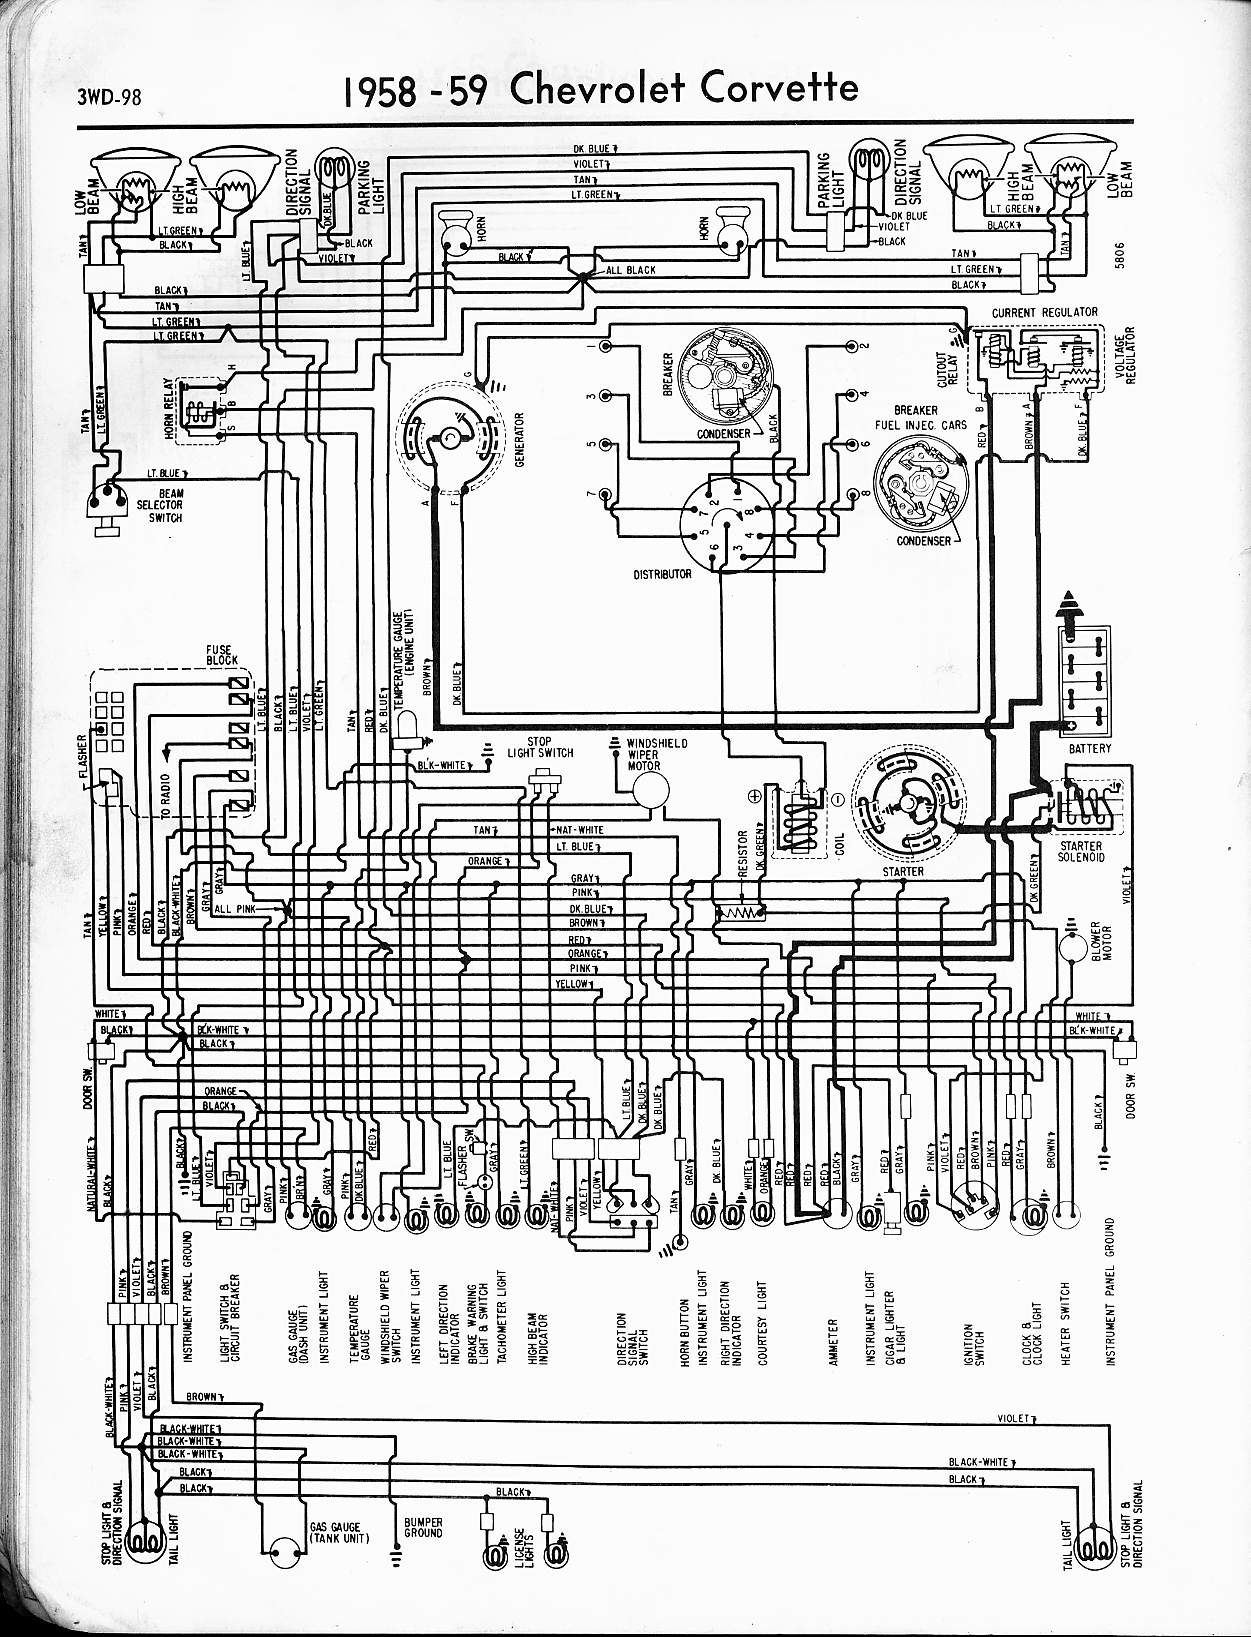 1969 corvette wiring harness easy to read wiring diagrams u2022 rh gregorydunn co